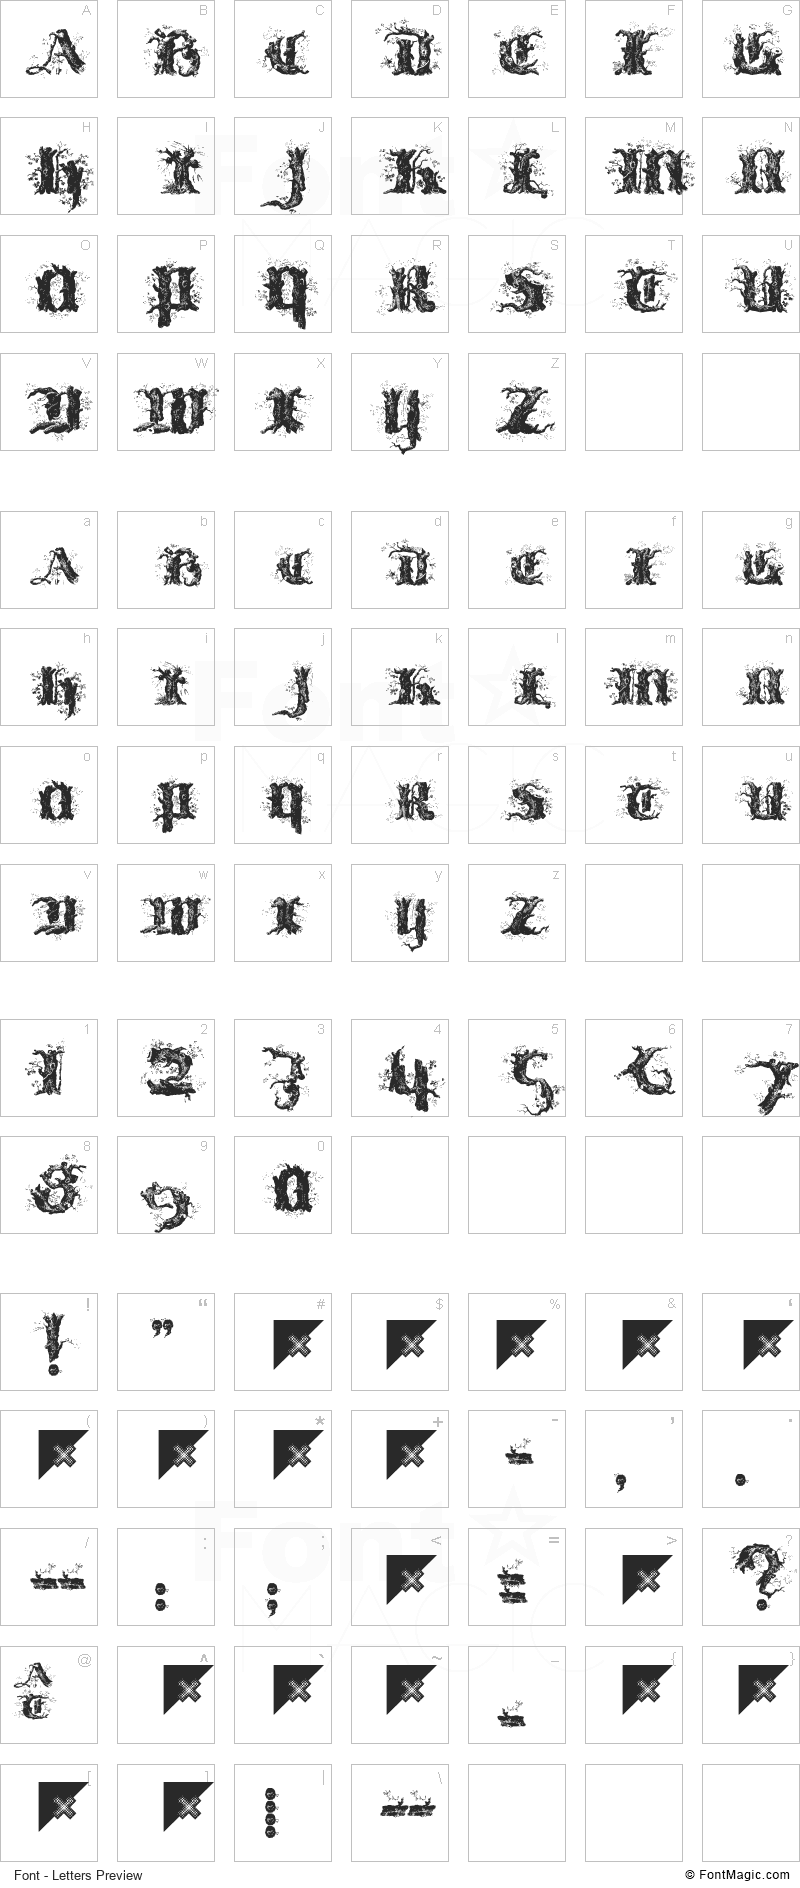 !Limberjack Font - All Latters Preview Chart